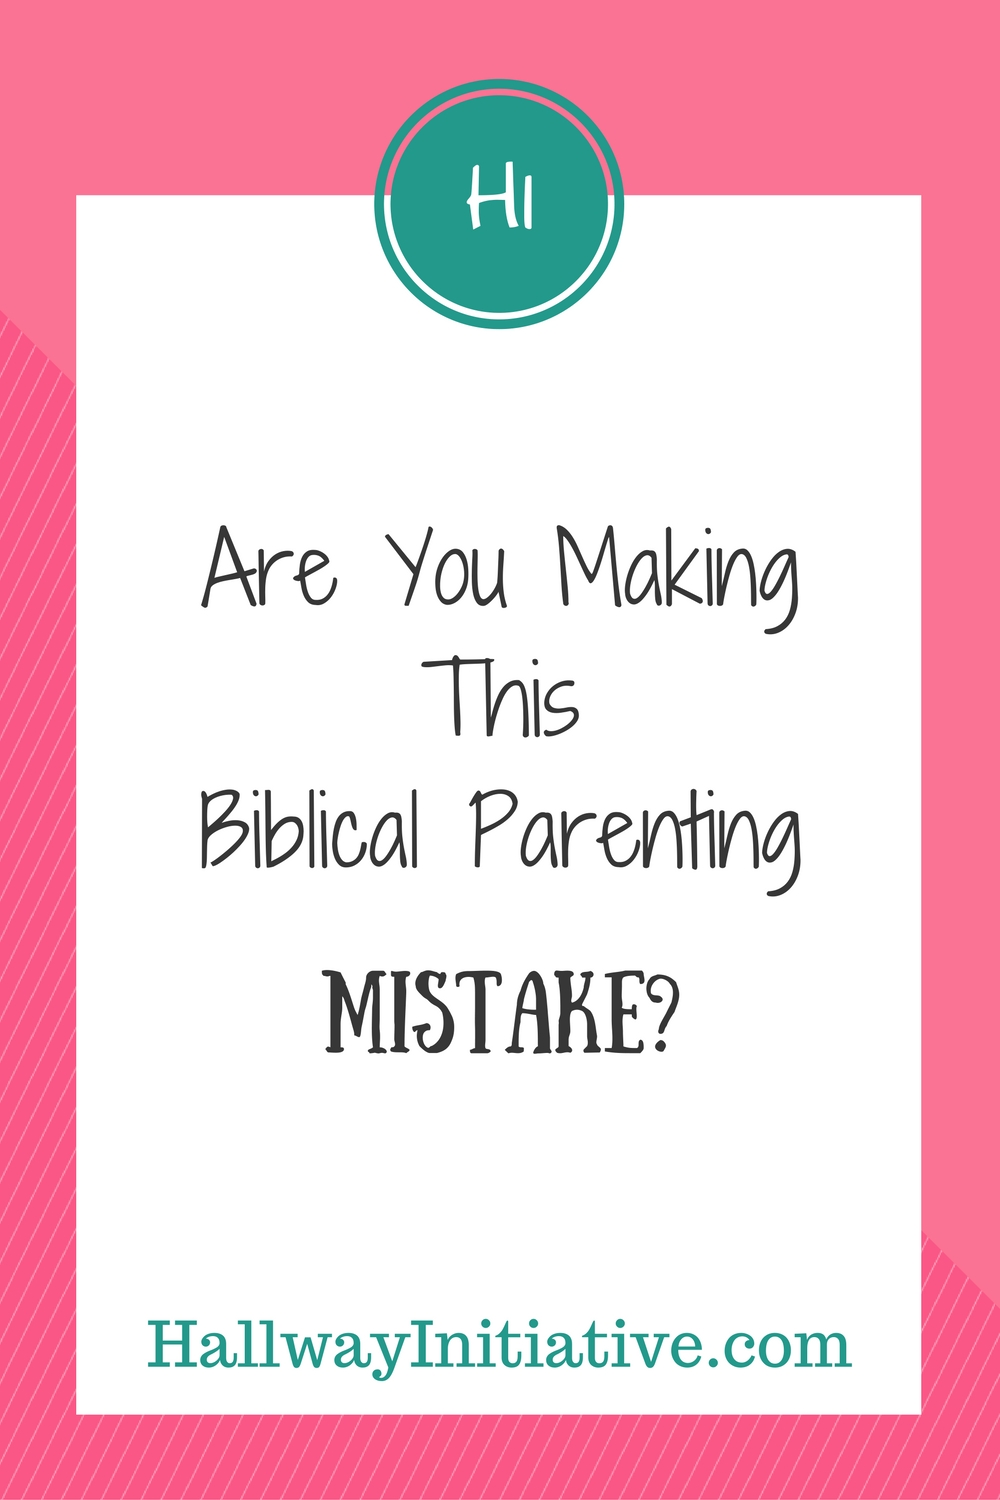 Are you making this biblical parenting mistake?